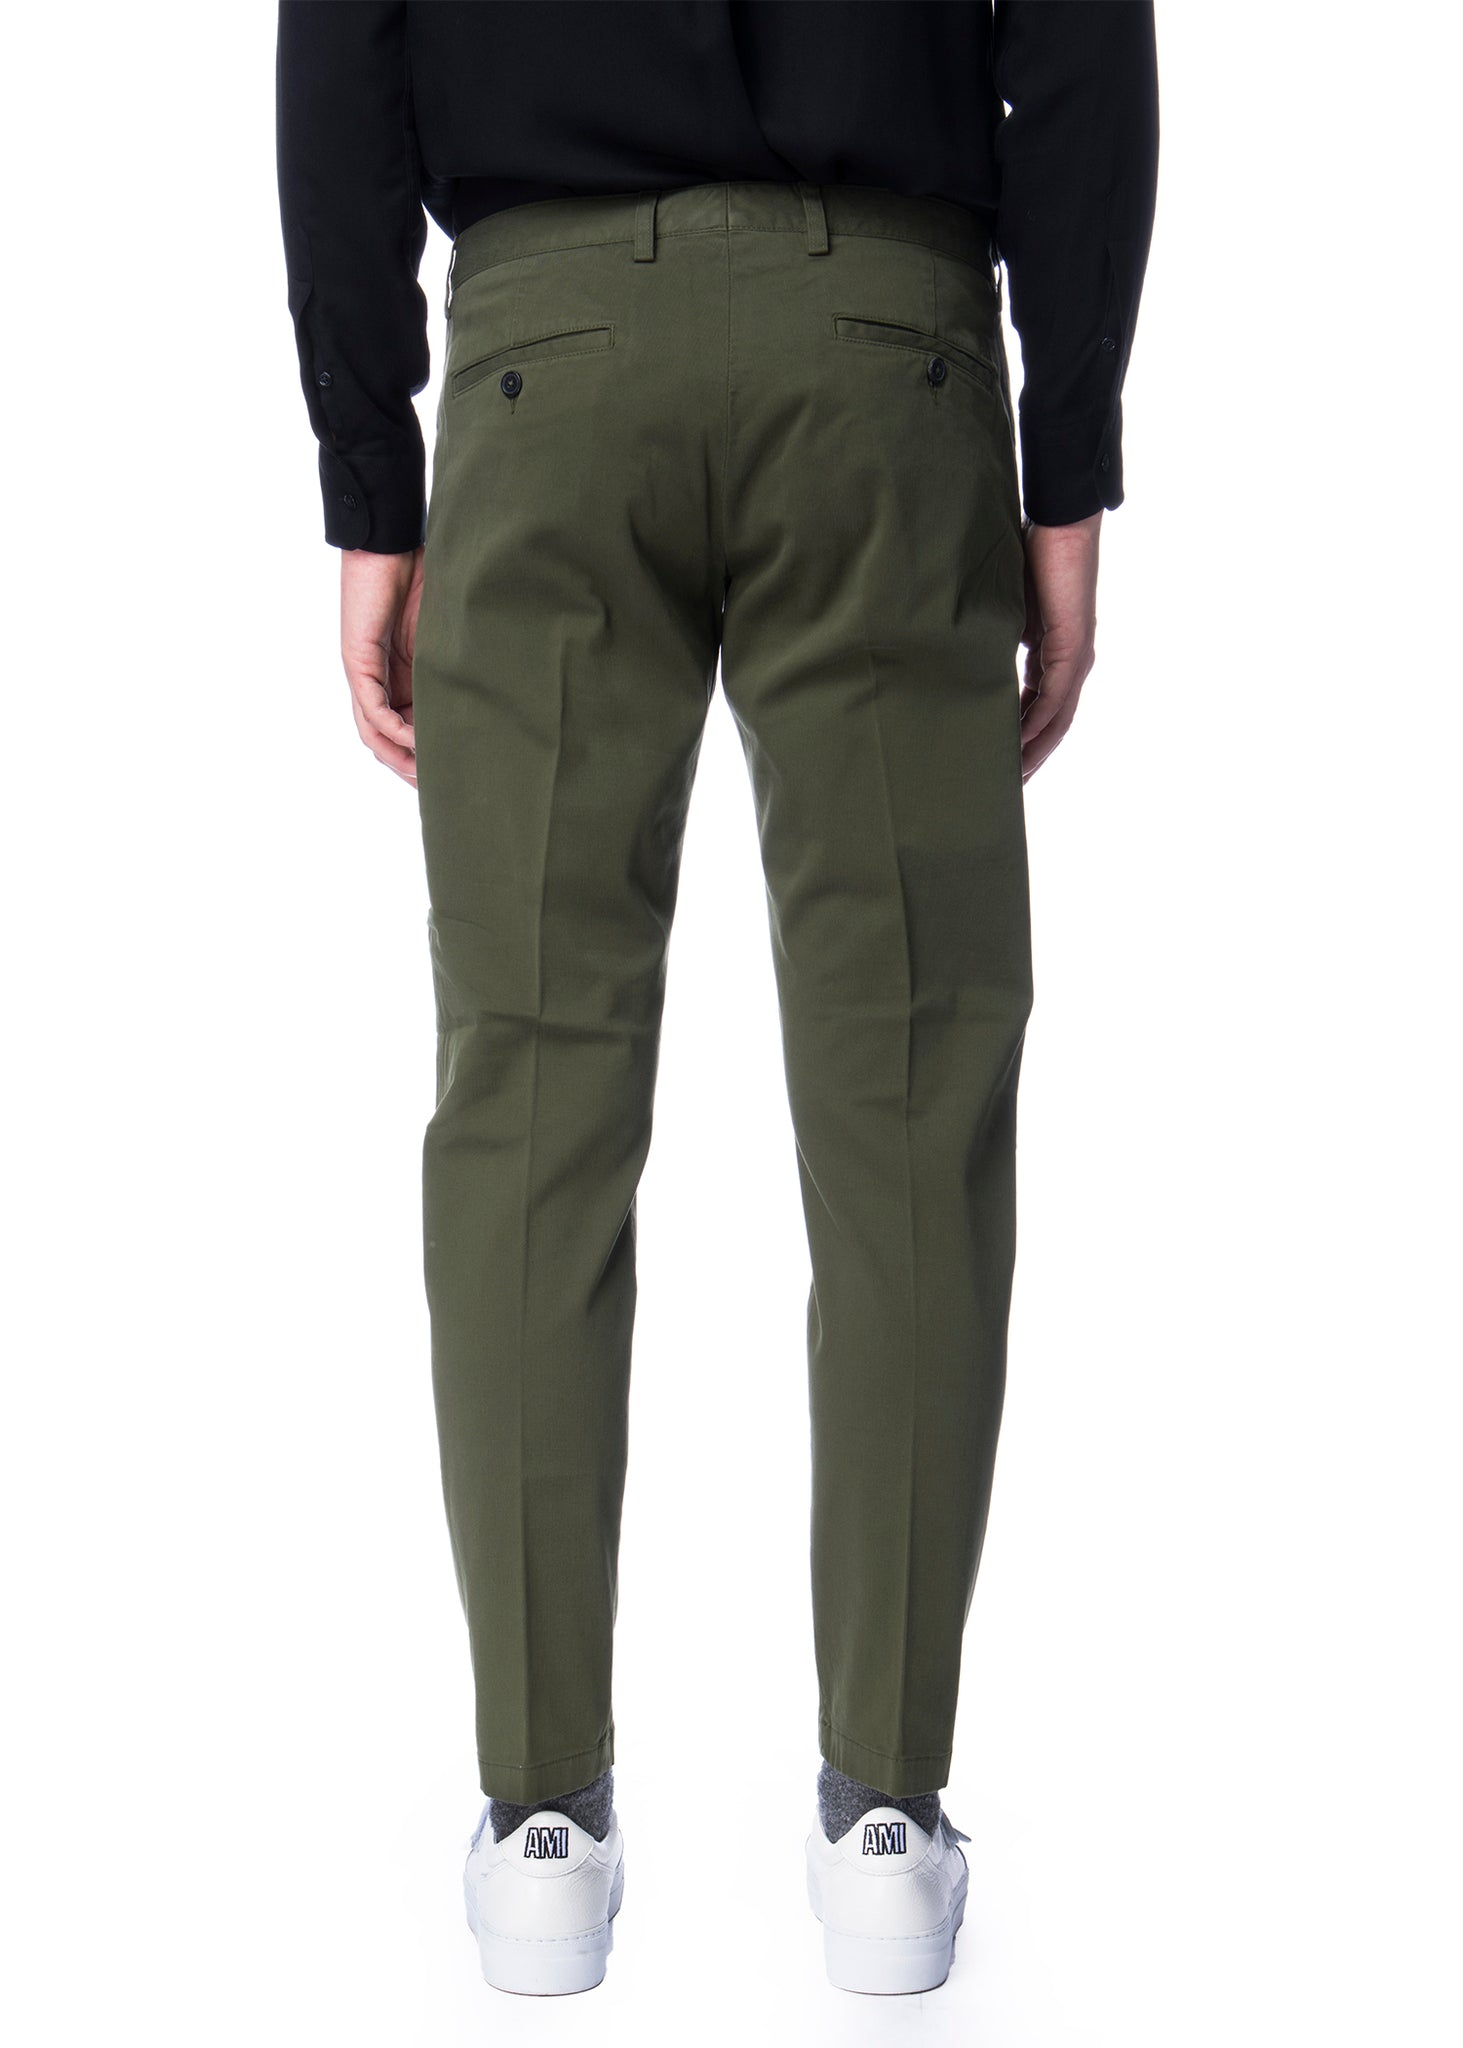 Pantalon chino vert en coton|Green chino pants in cotton